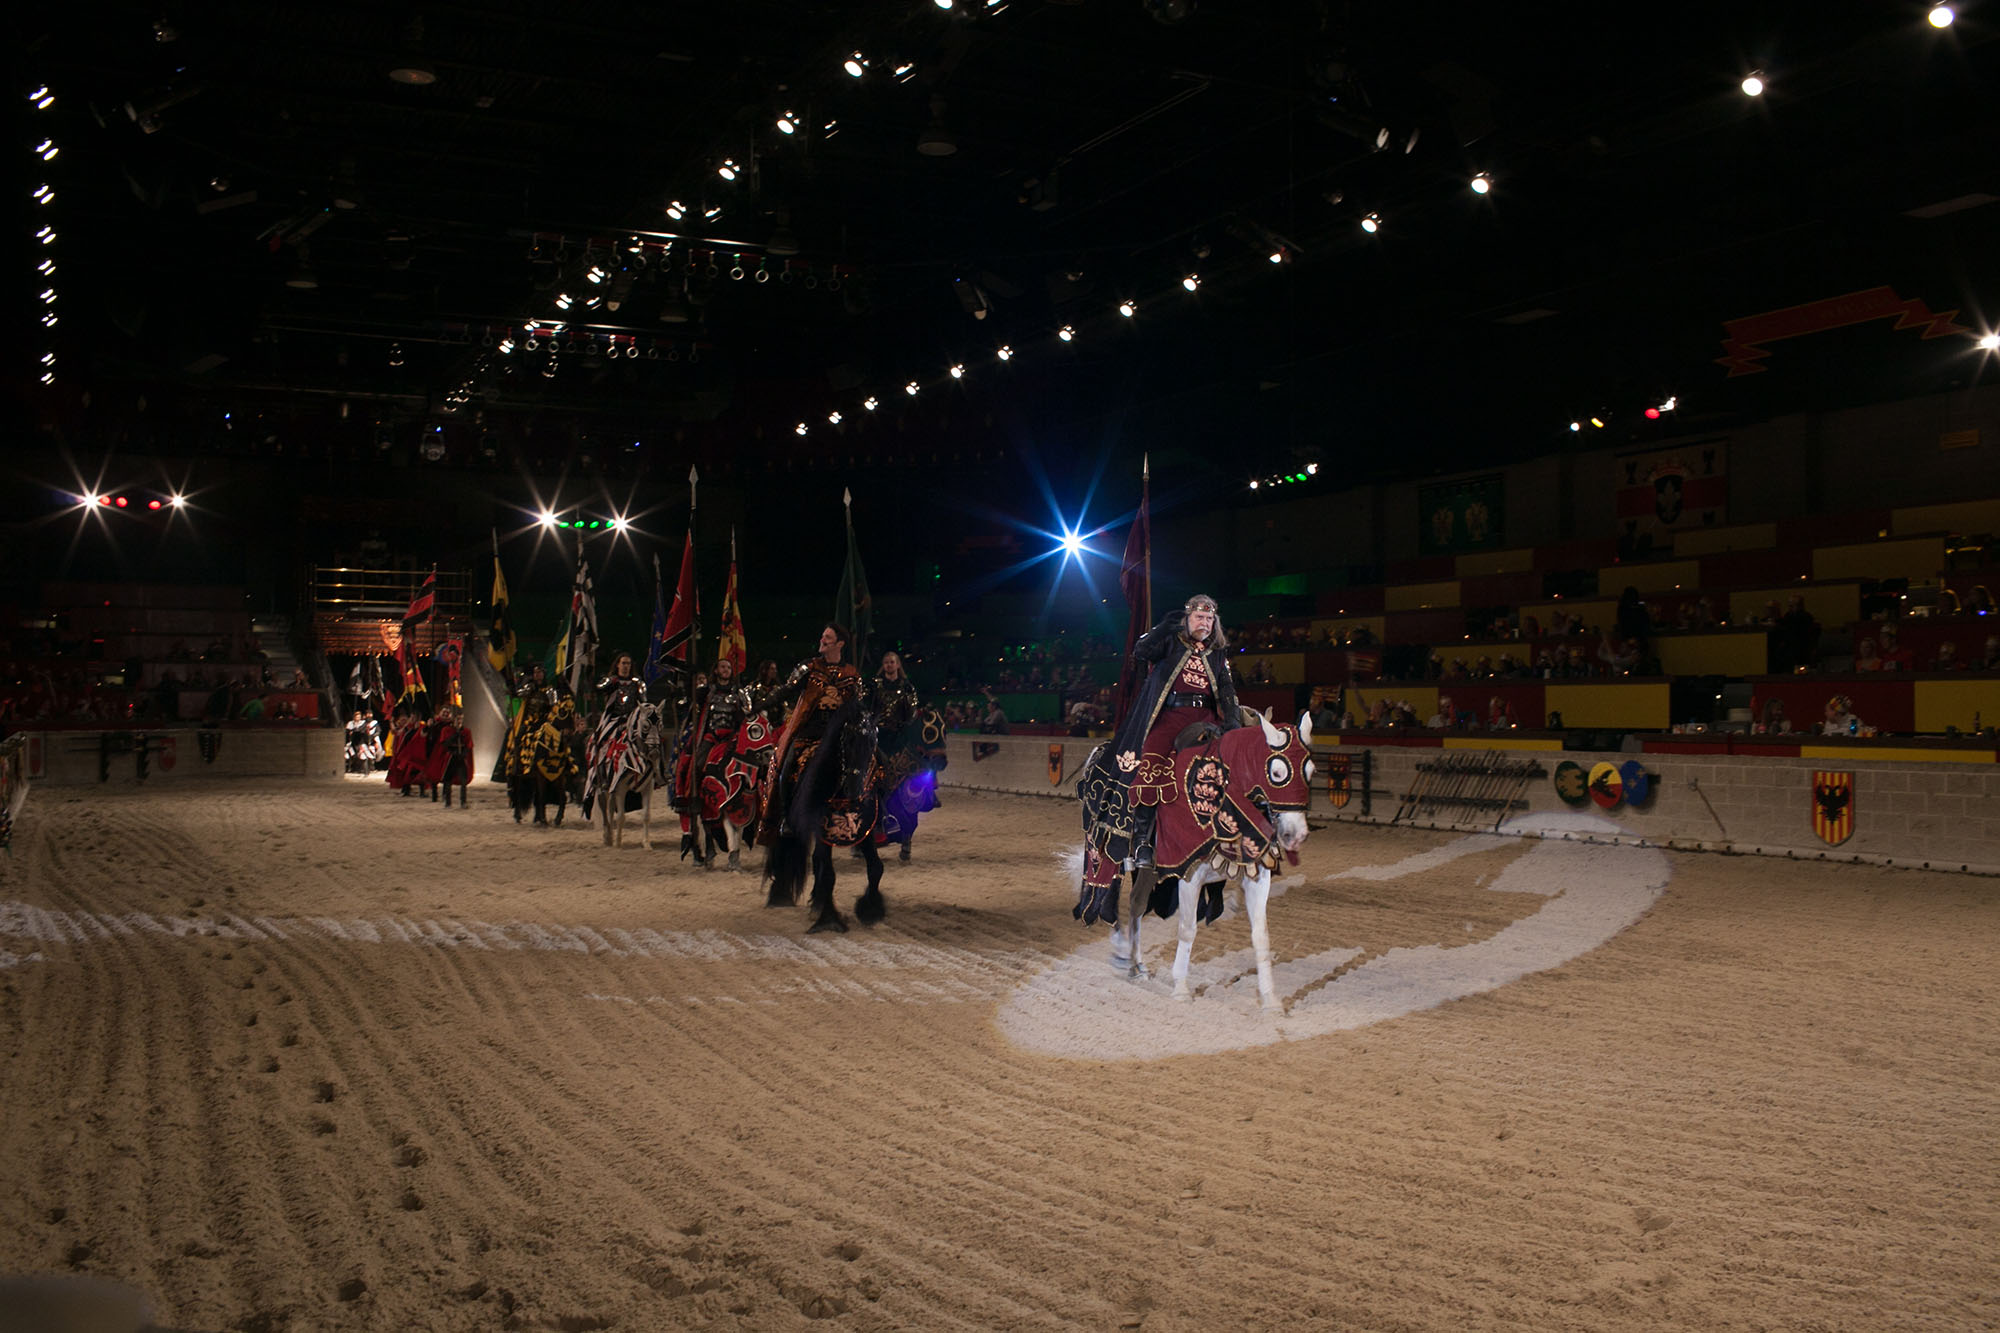 Birthday party at Medieval Times Dinner and Tournament in Schaumburg, Illinois.